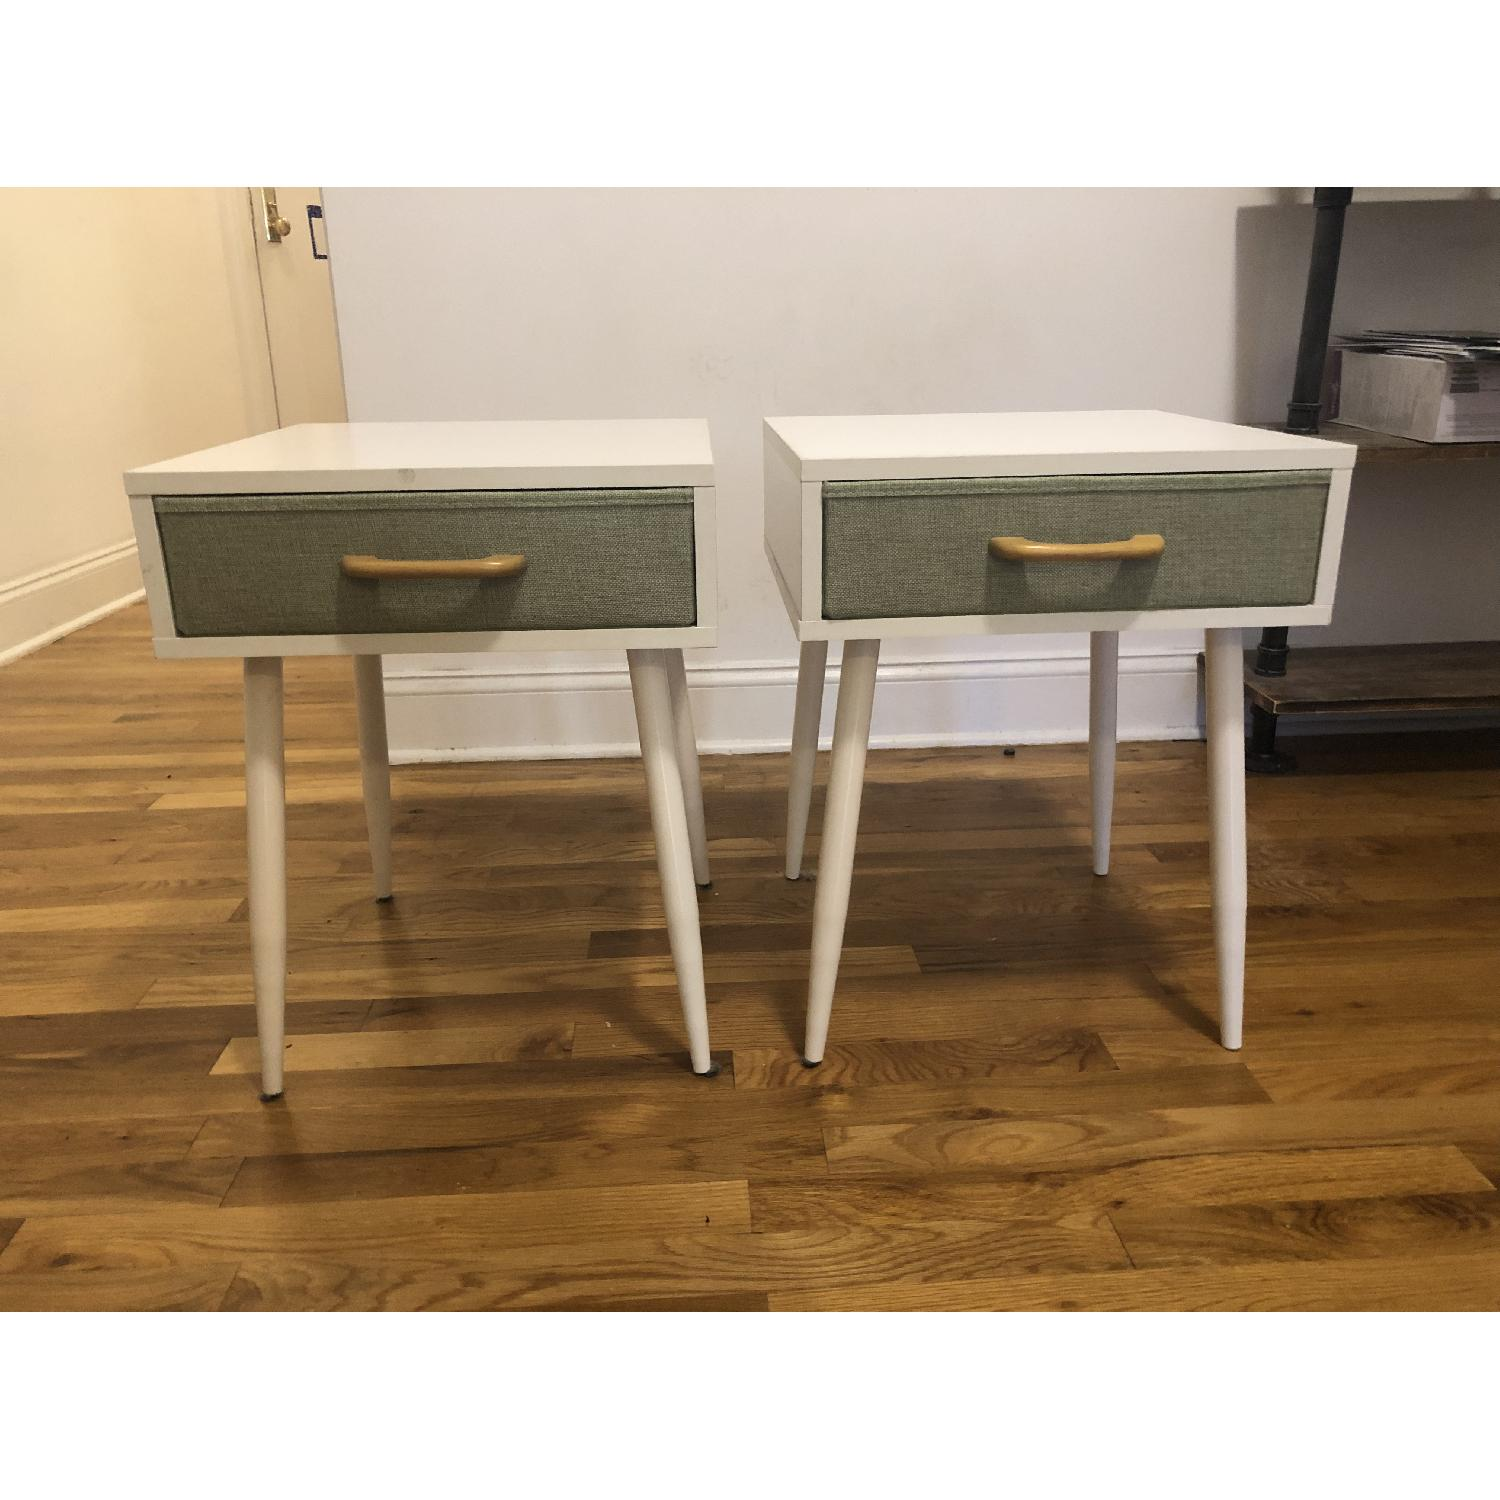 White & Green Nightstands - image-1